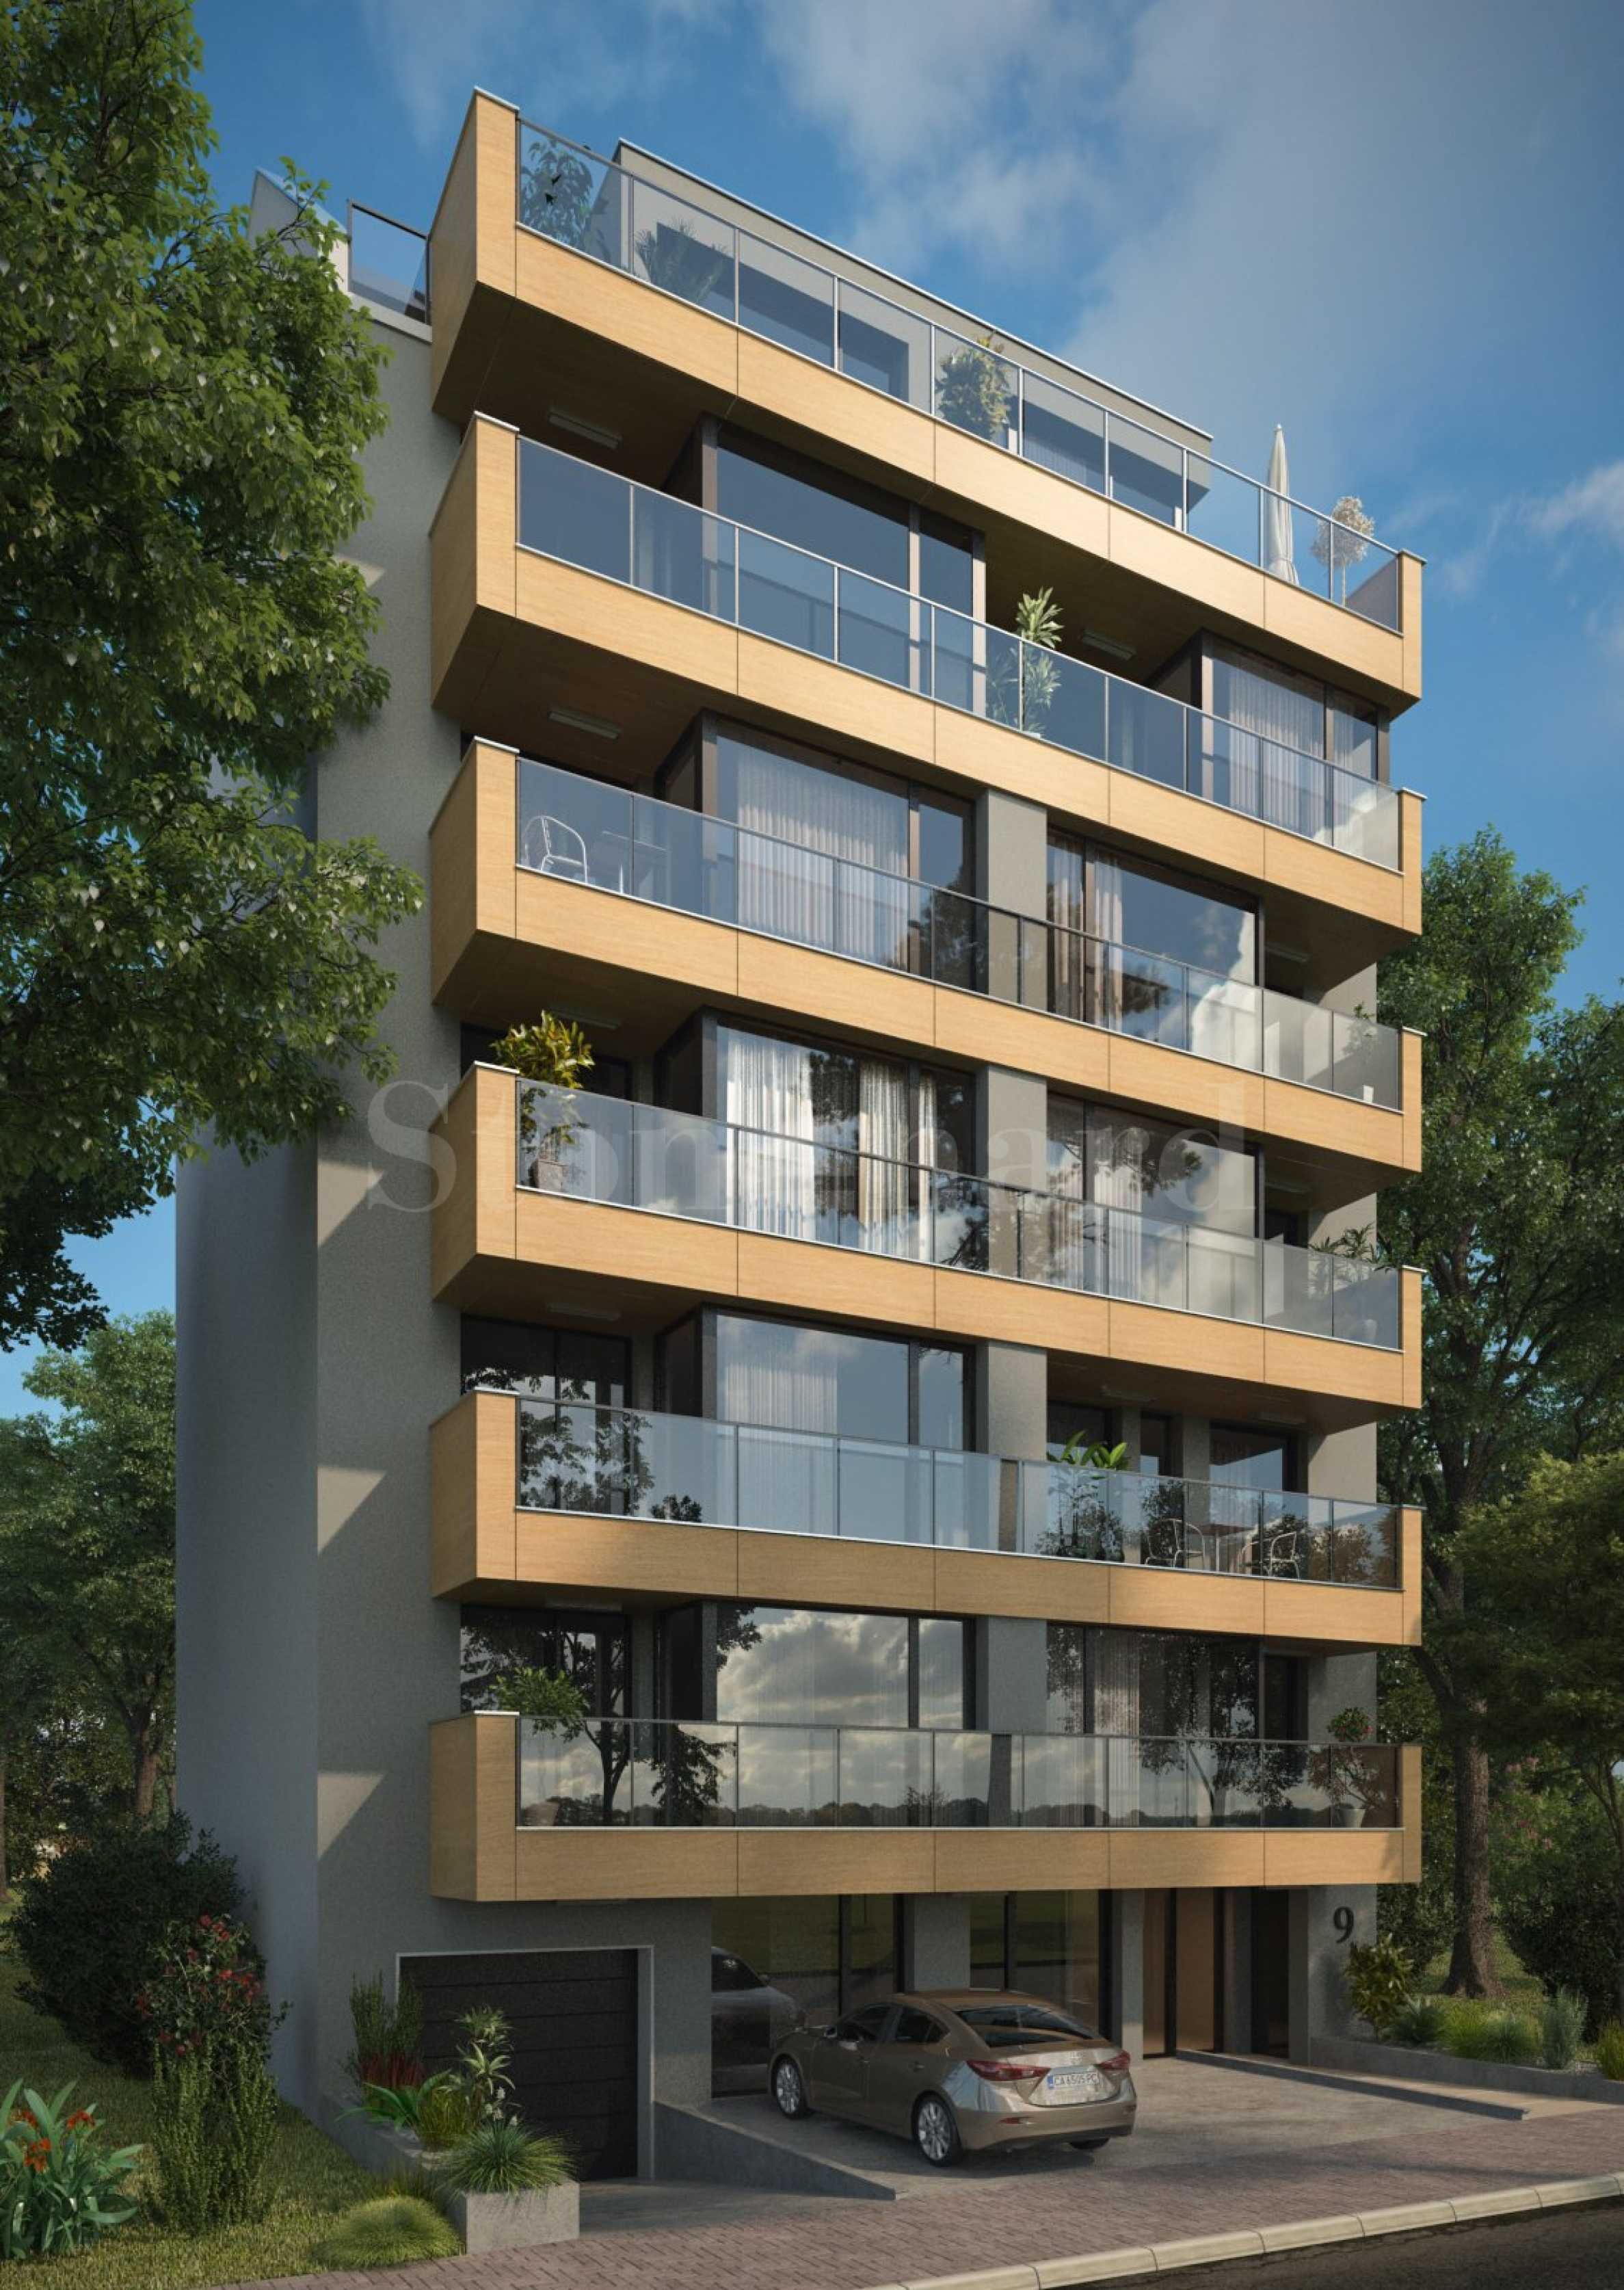 New residential building in one of the most prestigious areas in Sofia - Belite Brezi district1 - Stonehard